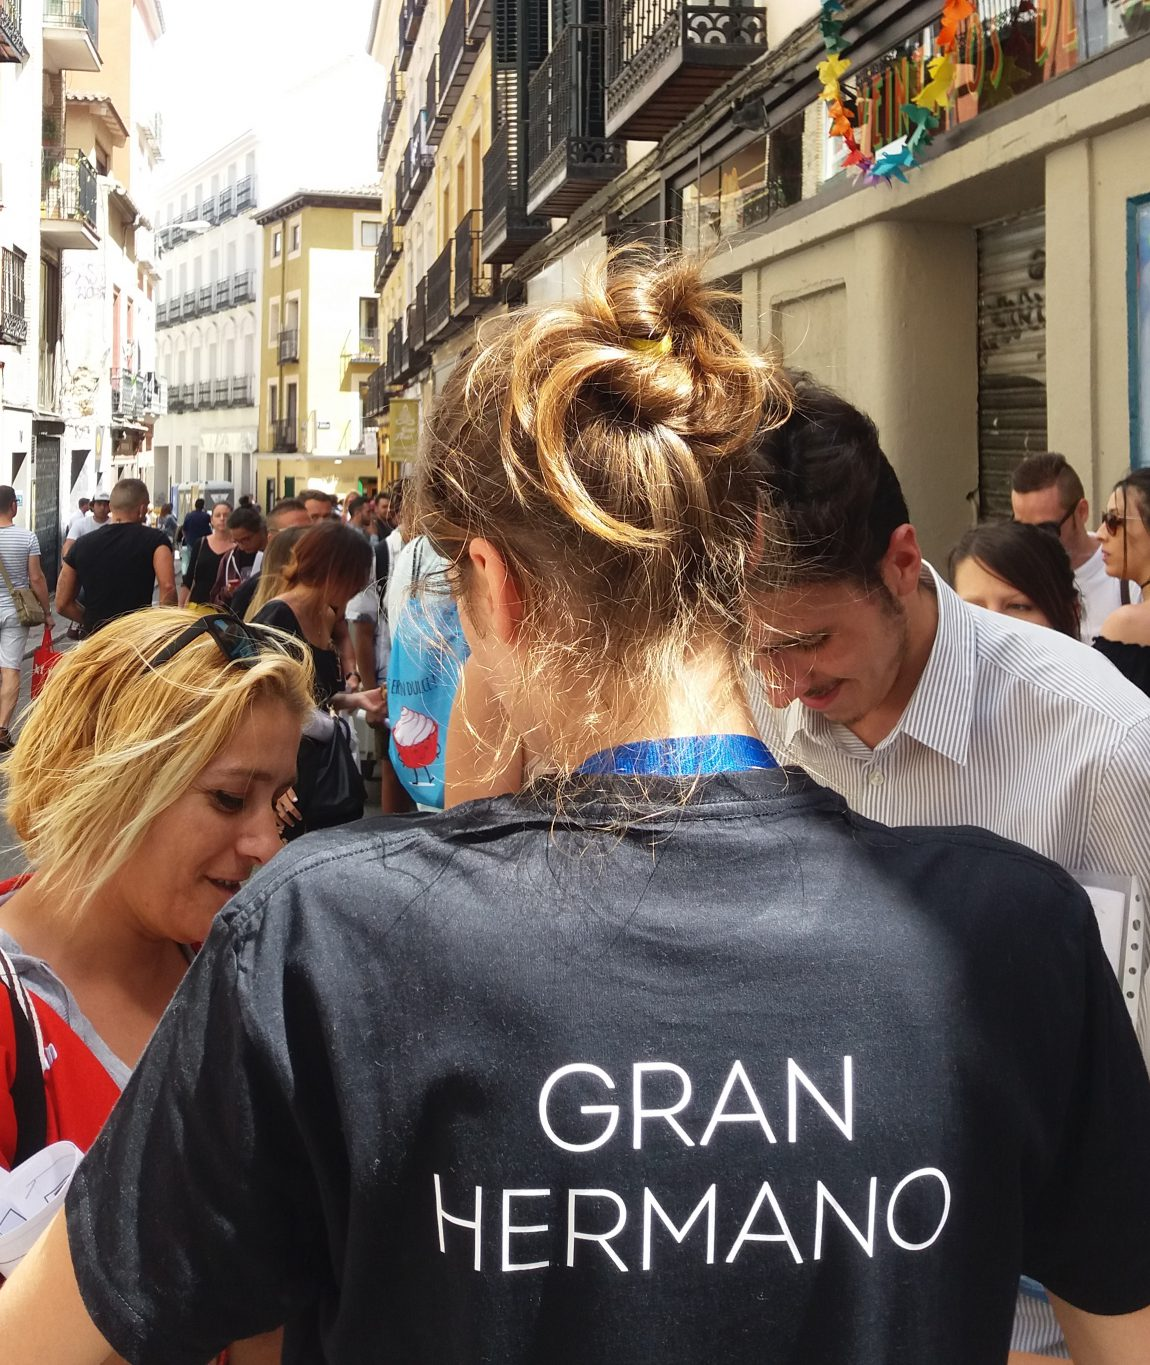 Asistencia multitudinaria al casting en Madrid de 'Gran Hermano', el reality Zeppelin TV (Endemol Shine Iberia)